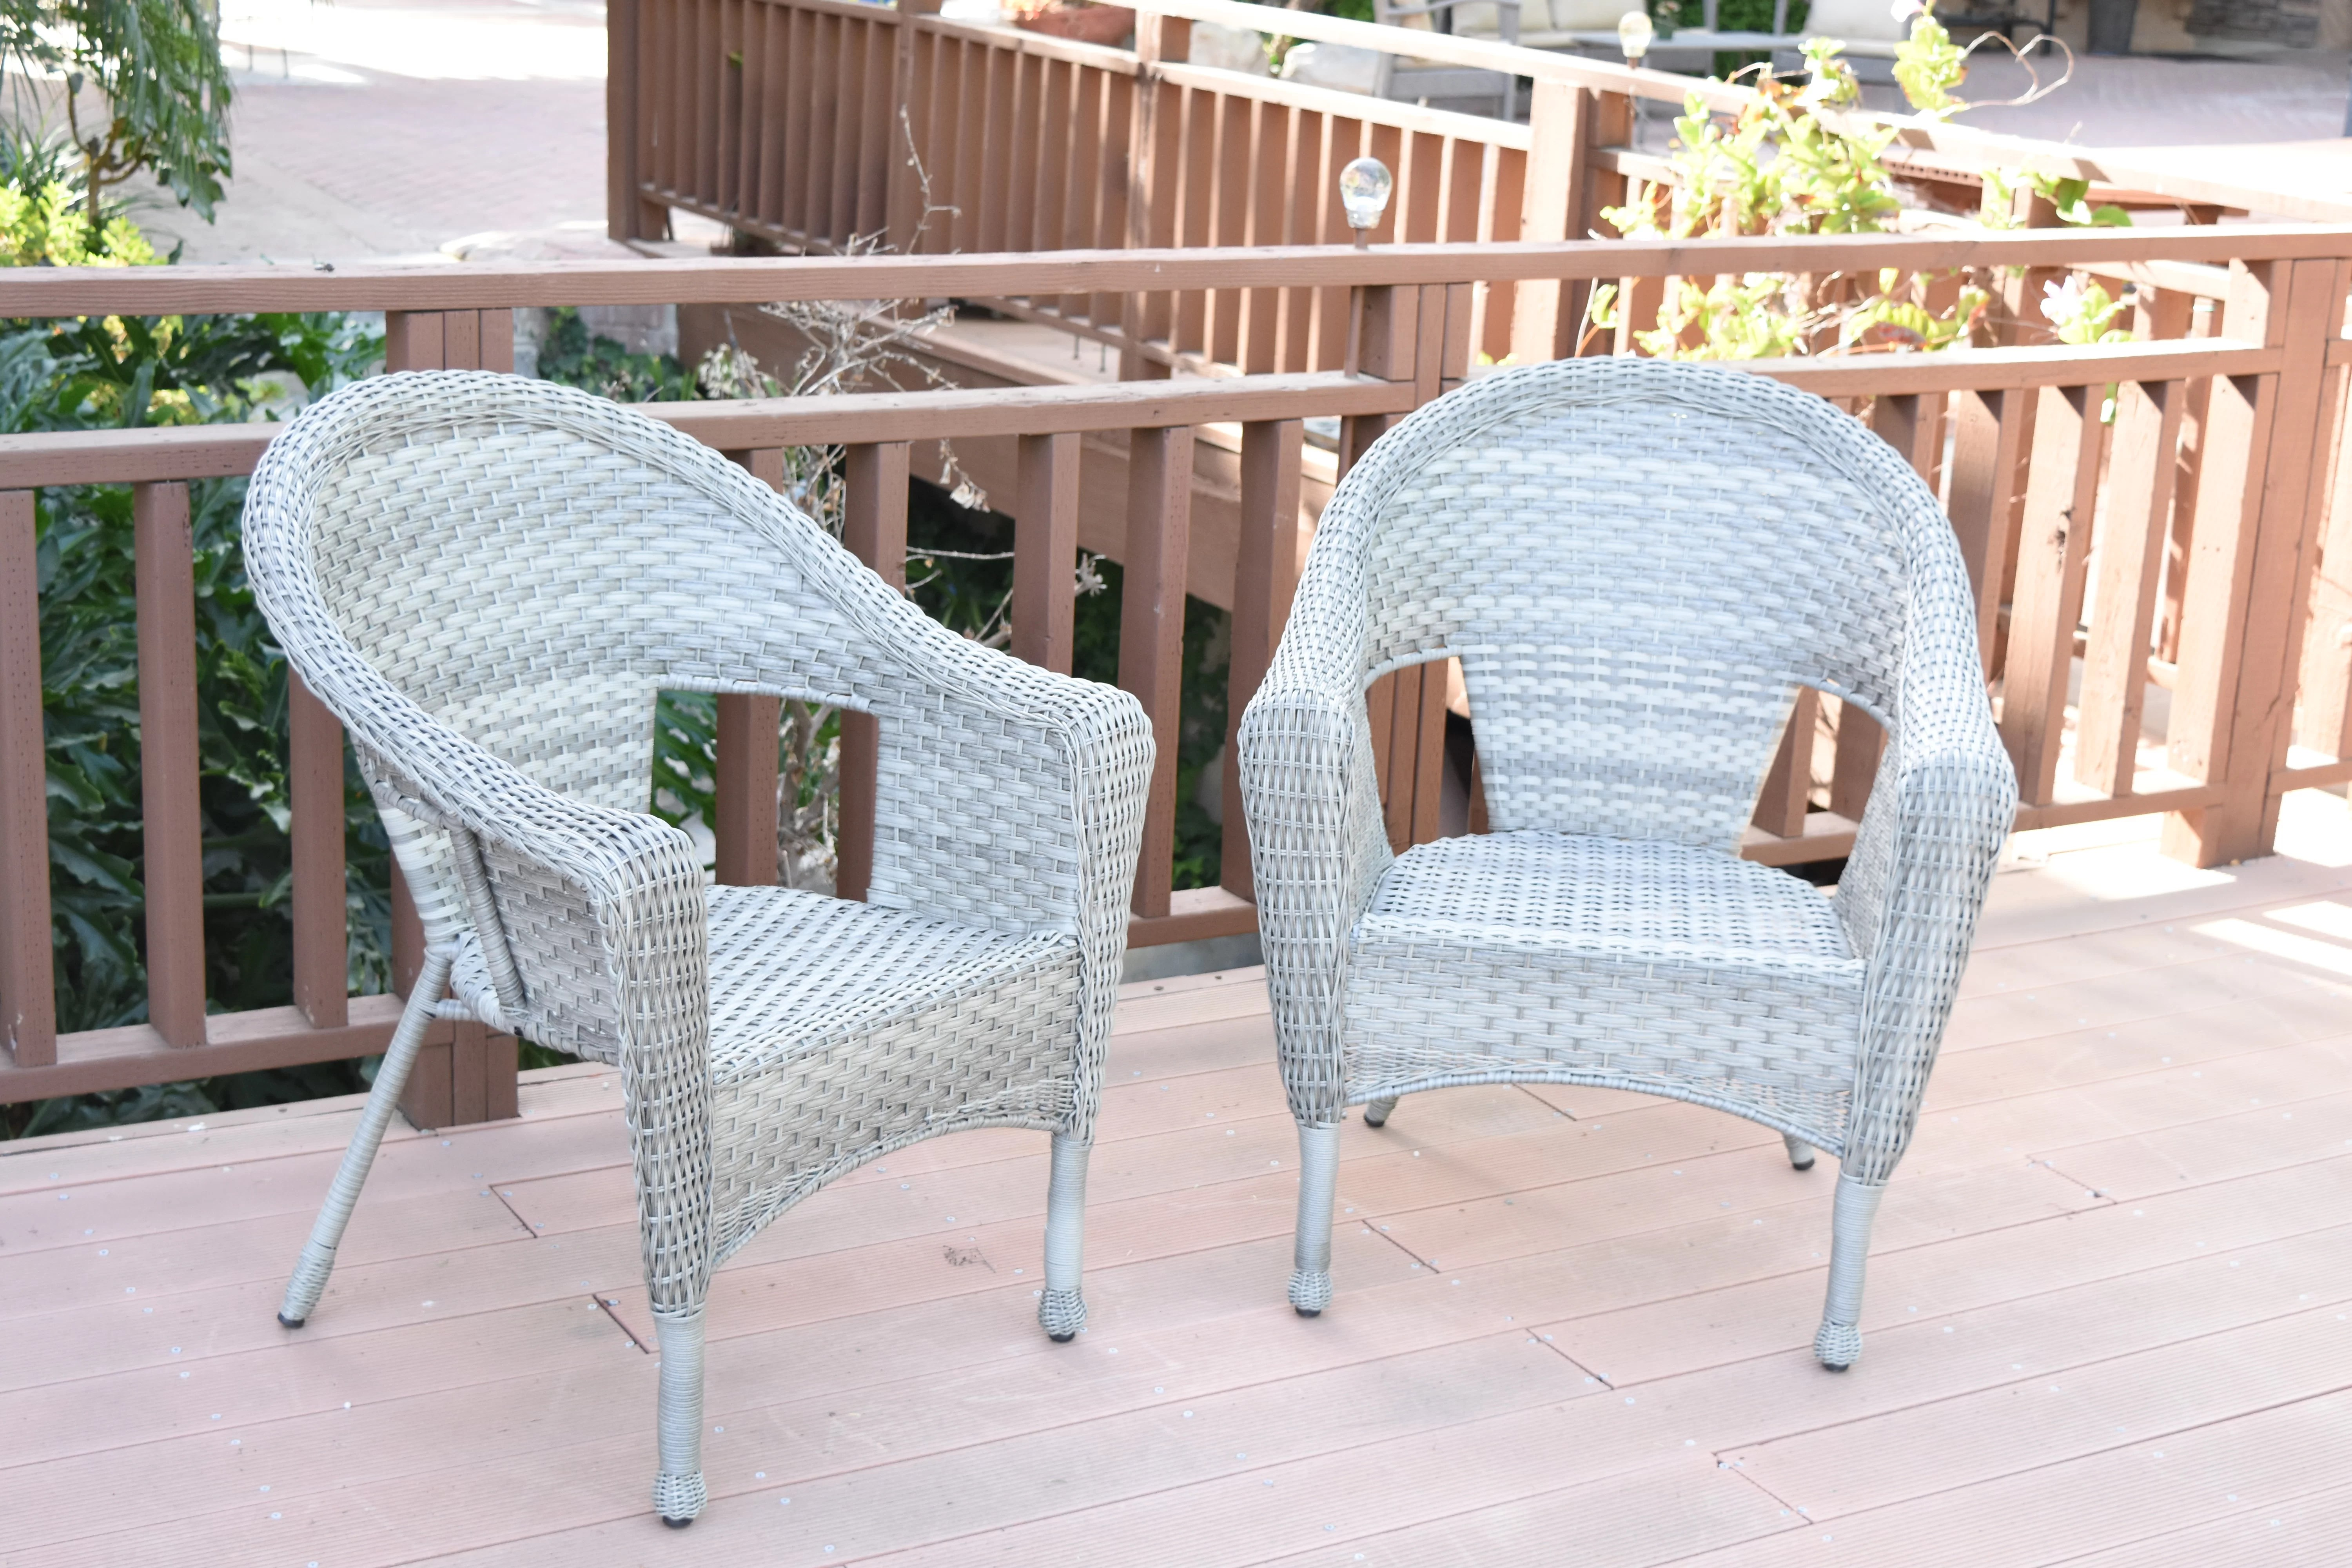 Wicker Patio Chair Kentwood Resin Wicker Patio Chair Without Cushion